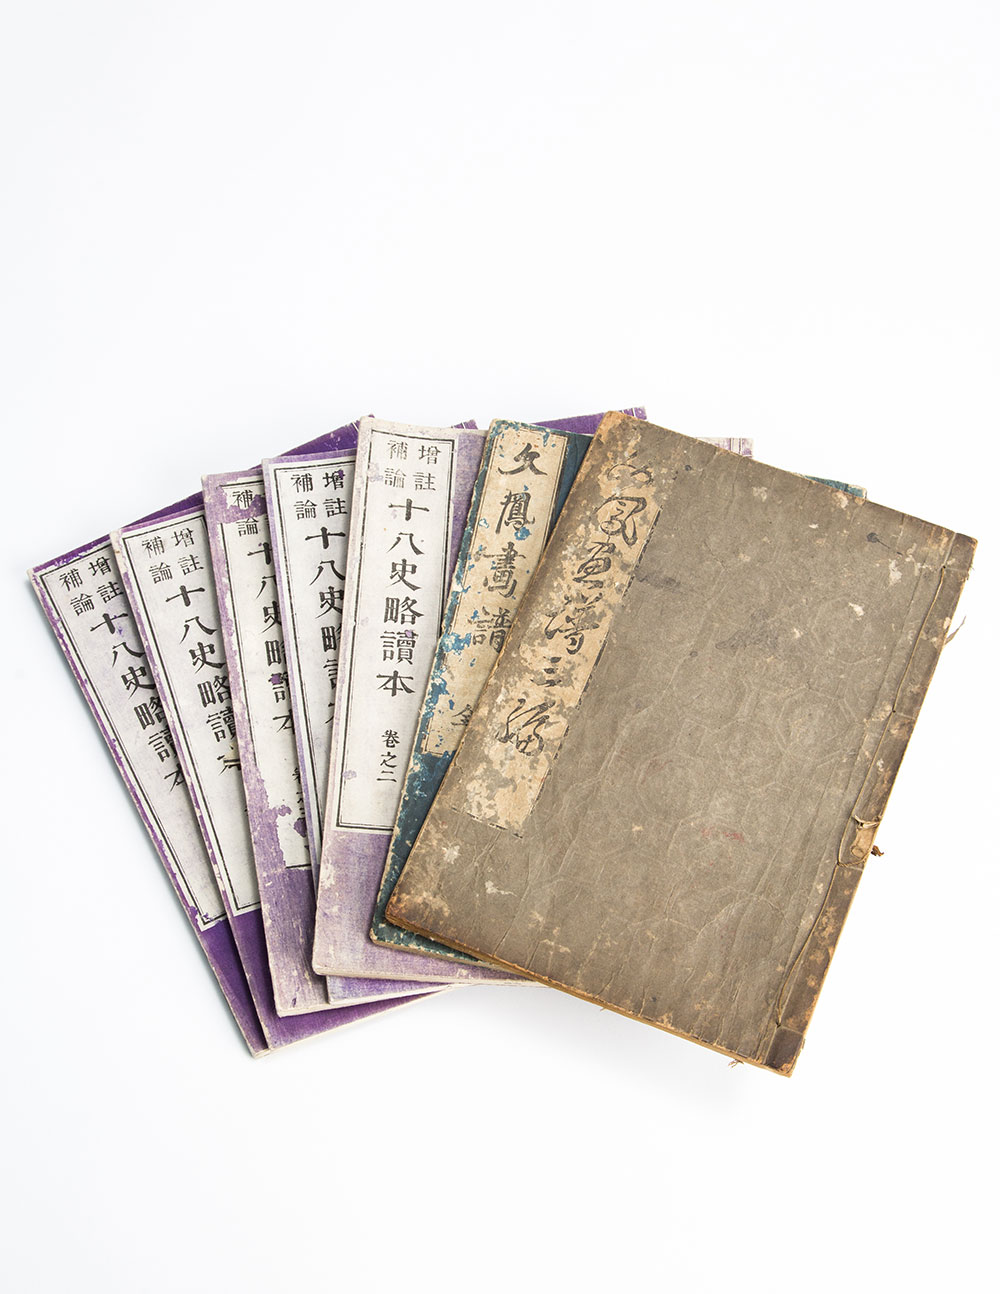 Miscellaneous Old Japanese Books  $45 each